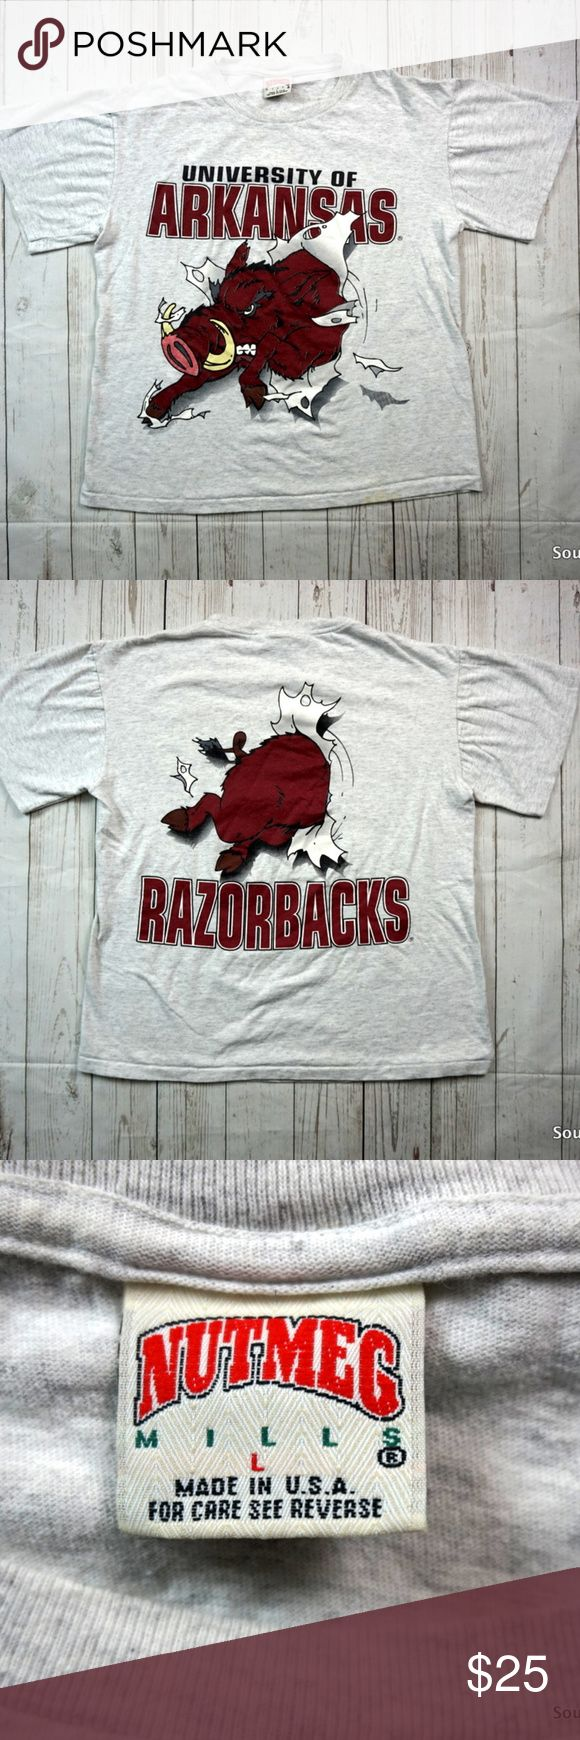 "Vintage 90s Arkansas Razorbacks T-Shrit By Nutmeg Vintage 90s Arkansas Razorbacks T-Shrit, Men's Large, Break Through Double Sided Logo, University of Arkansas, Nutmeg Mills  Brand: ......... Nutmeg Color: .......... Heather Gary Size: ............Men's Large Material:  ..... 100% Cotton  Measurements: Sleeves: ...................... 7"" inches Chest: ....................... 22"" inches Length: ...................... 30"" inches  Ships in 24 hrs or less from a clean smoke free environment…"